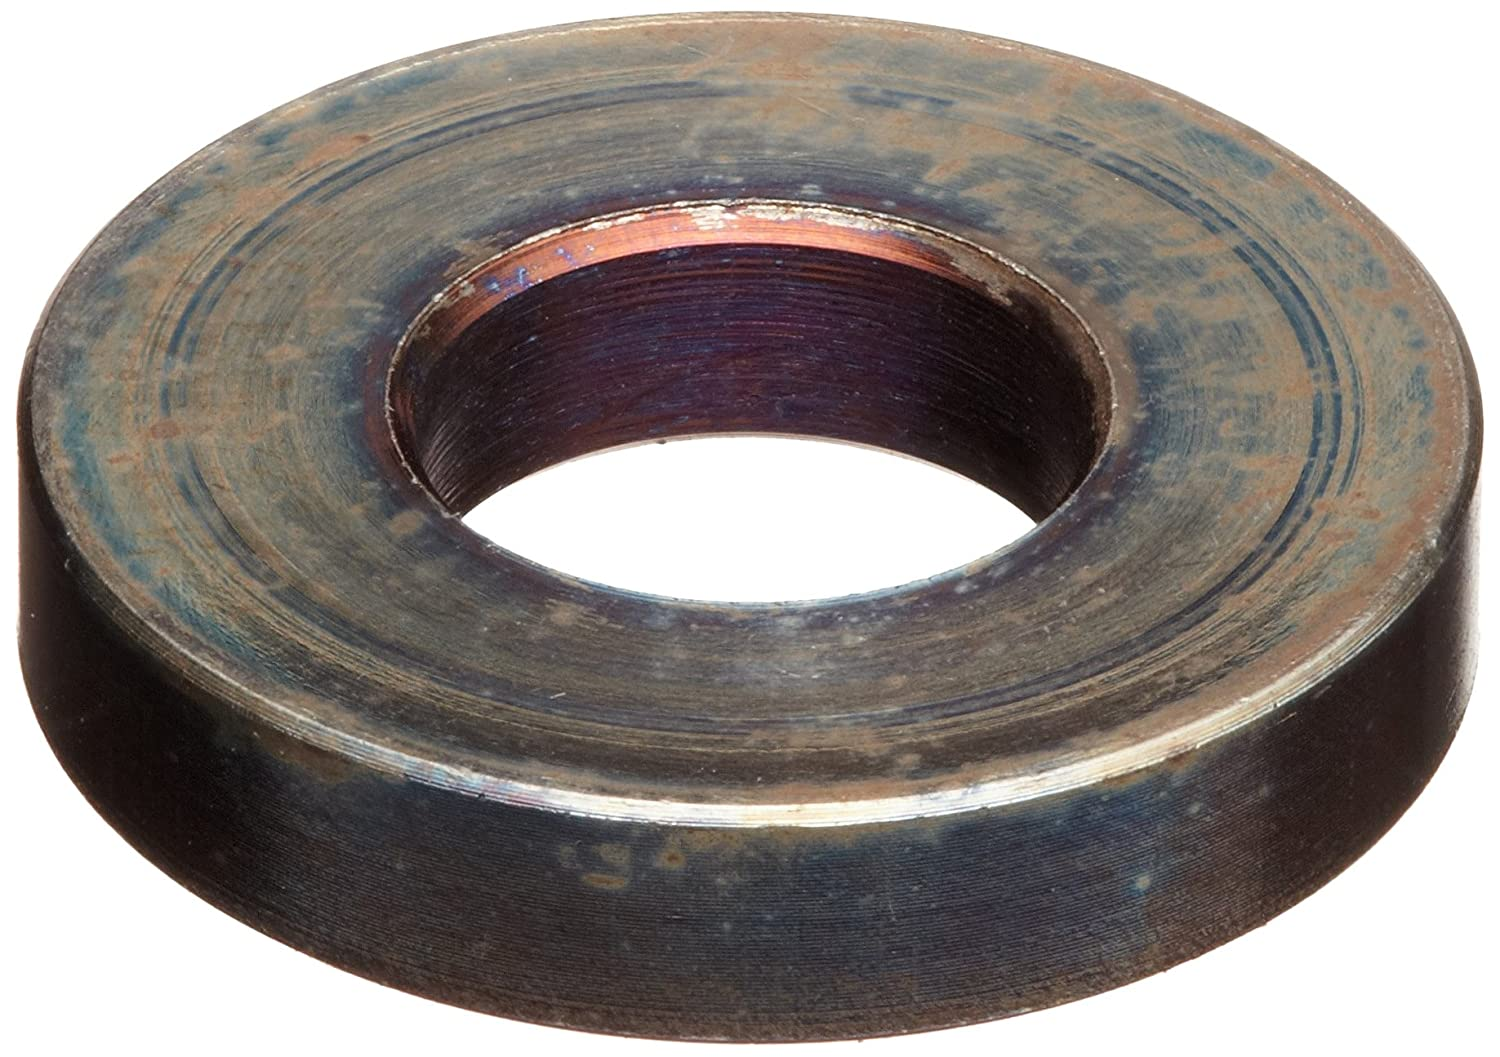 3//4 Hole Size Made in US 3//4 Hole Size 0.781 ID 1.625 OD 0.156 Nominal Thickness Accurate Manufacturing Z9101-174 1.625 OD 0.156 Nominal Thickness 17-4 Stainless Steel Flat Washer 0.781 ID